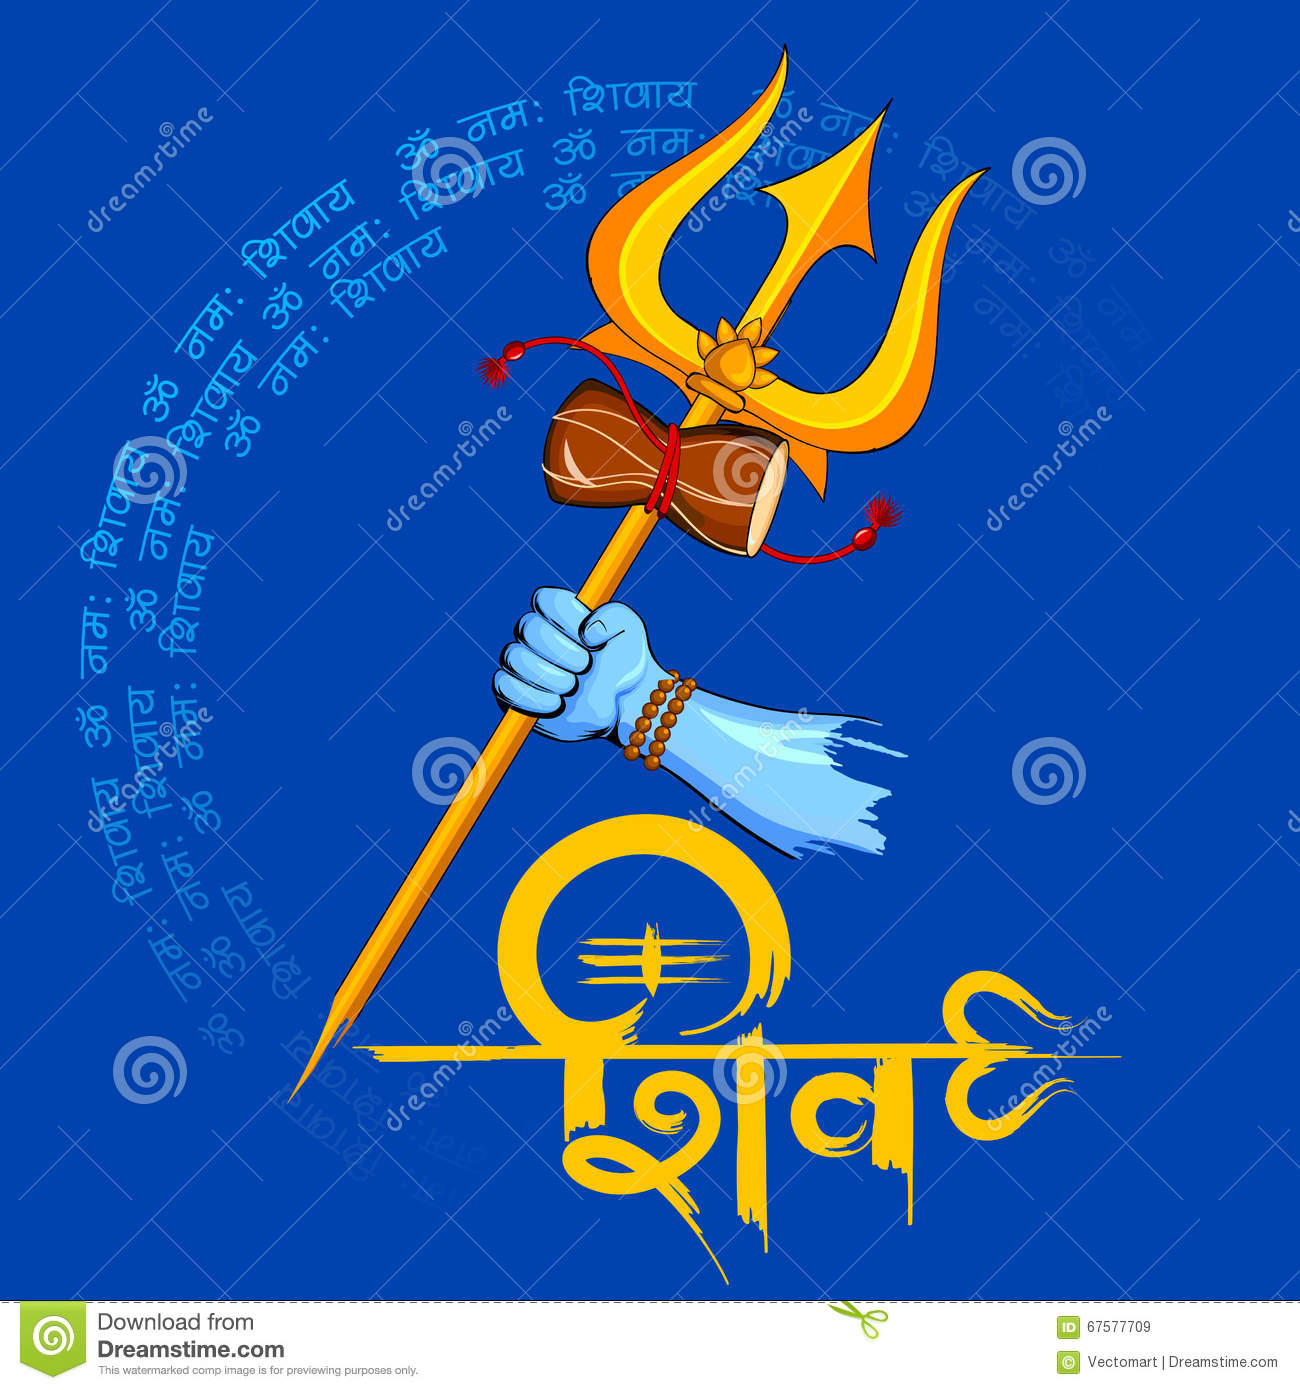 Lord Shiva Lingam Wallpapers 3d Lord Shiva Indian God Of Hindu Stock Vector Illustration